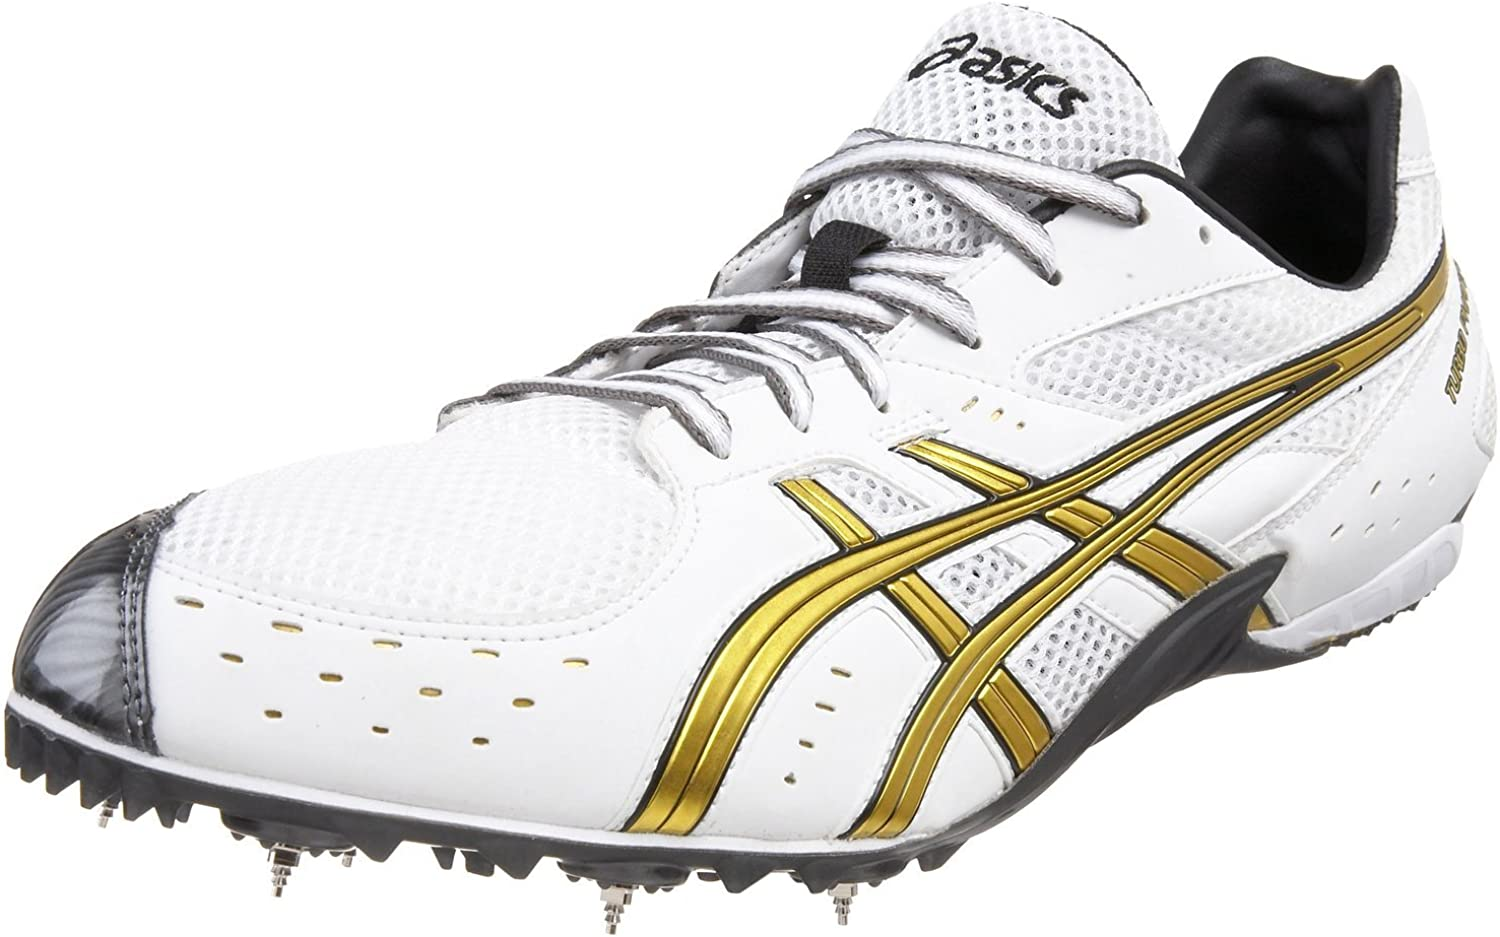 Asics Spikes SprintVallas Turbo Phantom Hombre Art. GOO2N